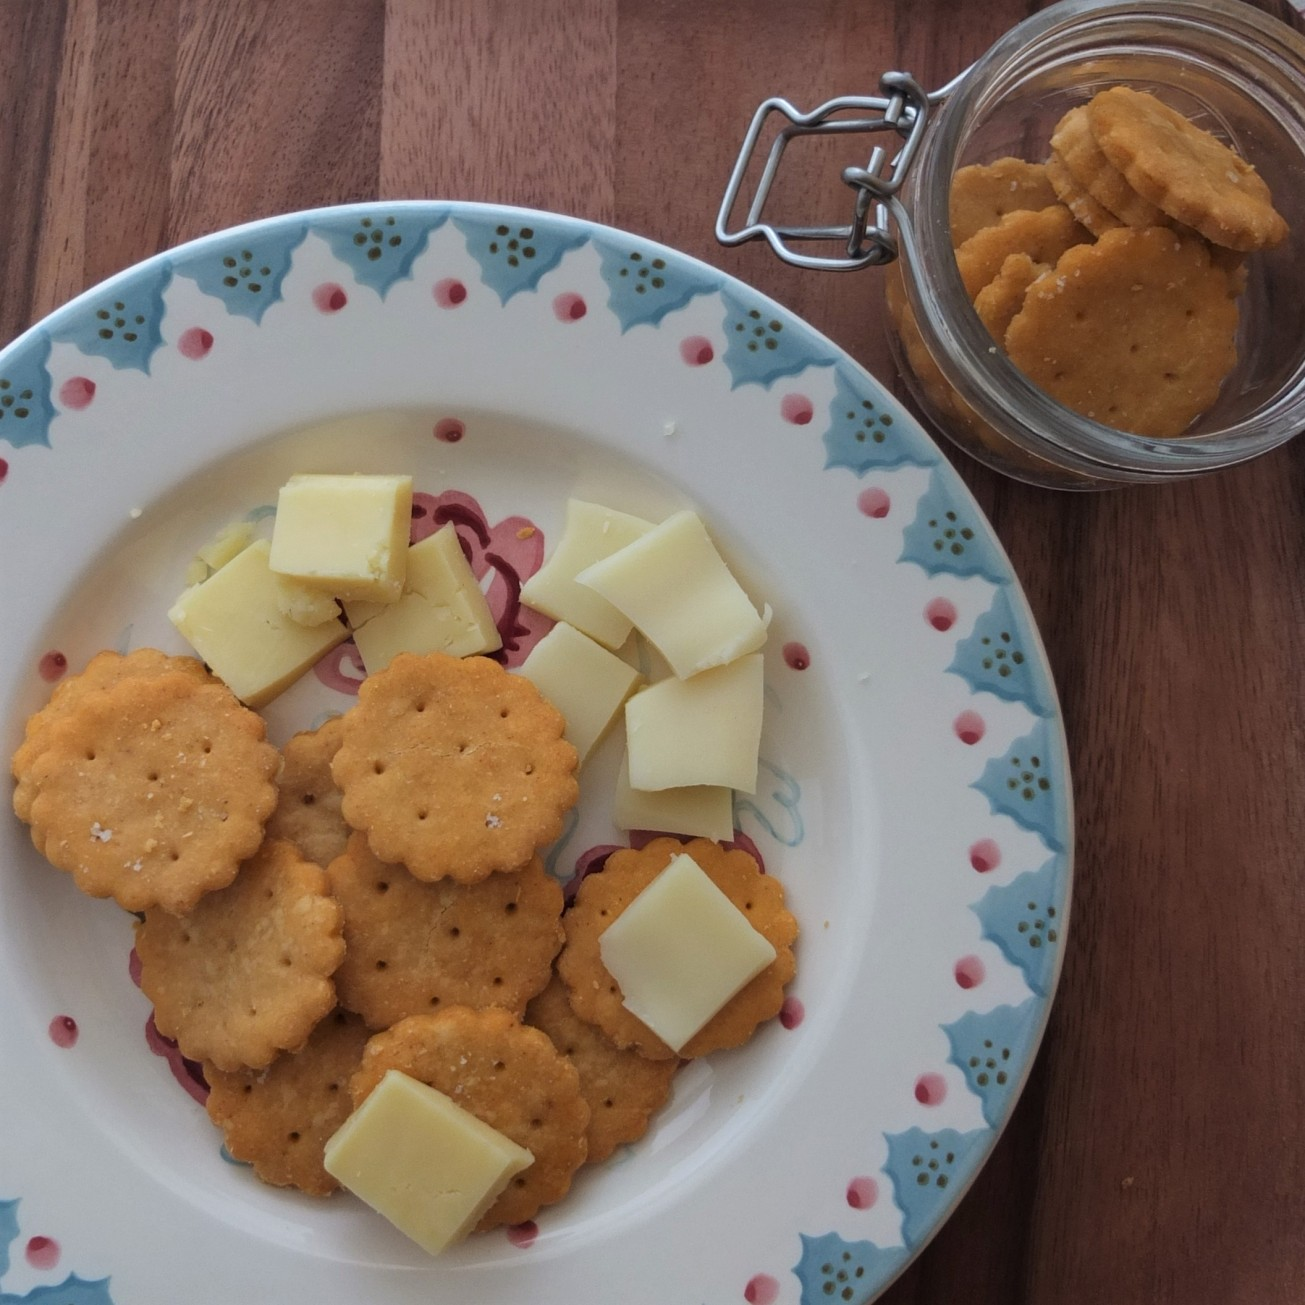 Homemade ritz-style crackers